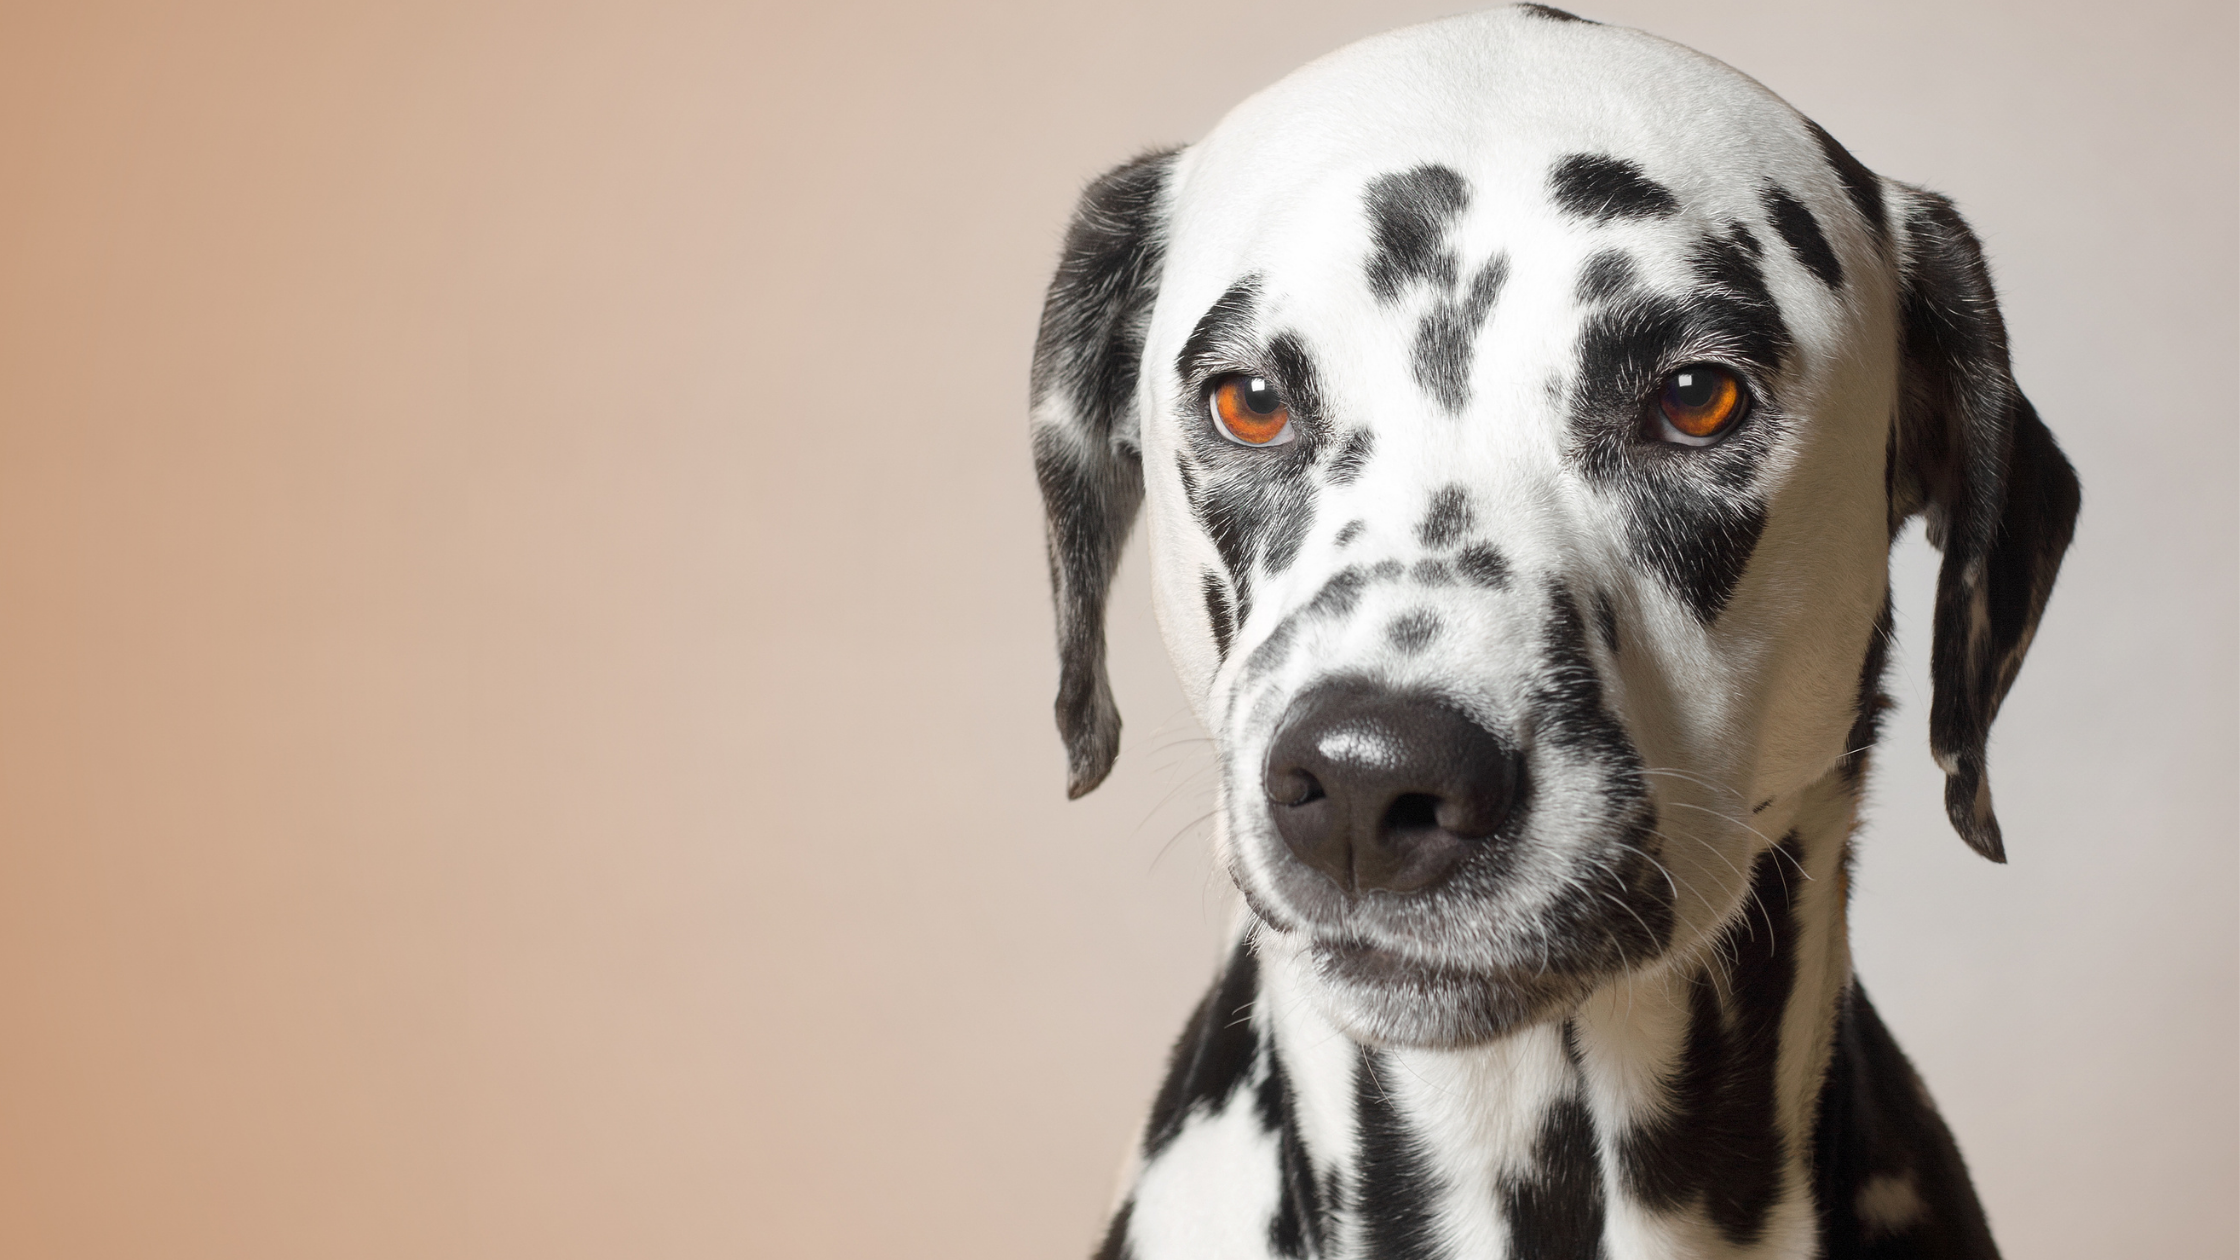 photo of an angry Dalmatian